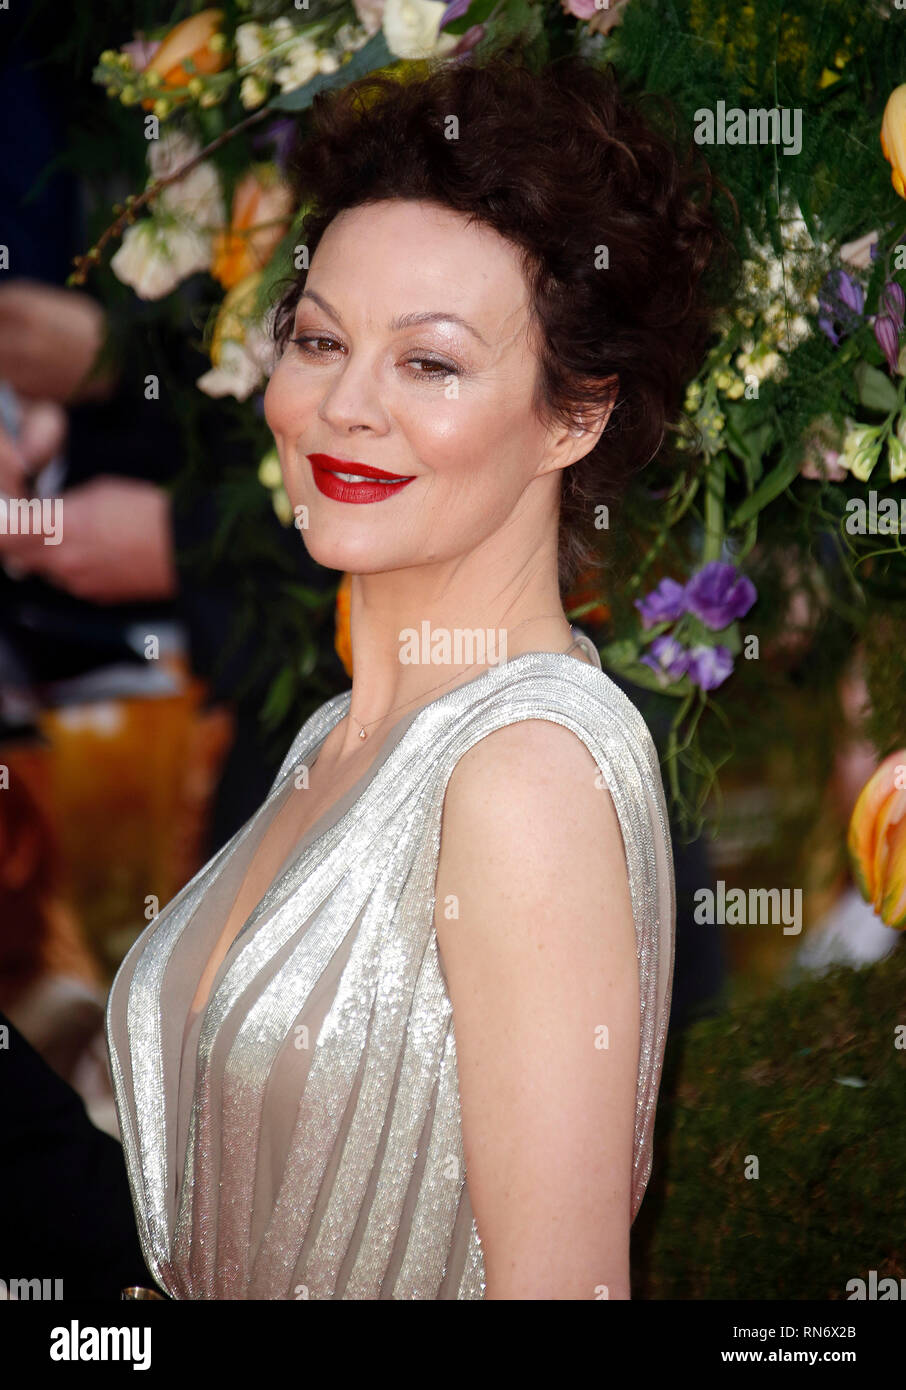 Apr 13 2015 London England Uk A Little Chaos Uk Premiere Odeon Kensington Red Carpet Arrivals Photo Shows Helen Mccrory Stock Photo Alamy